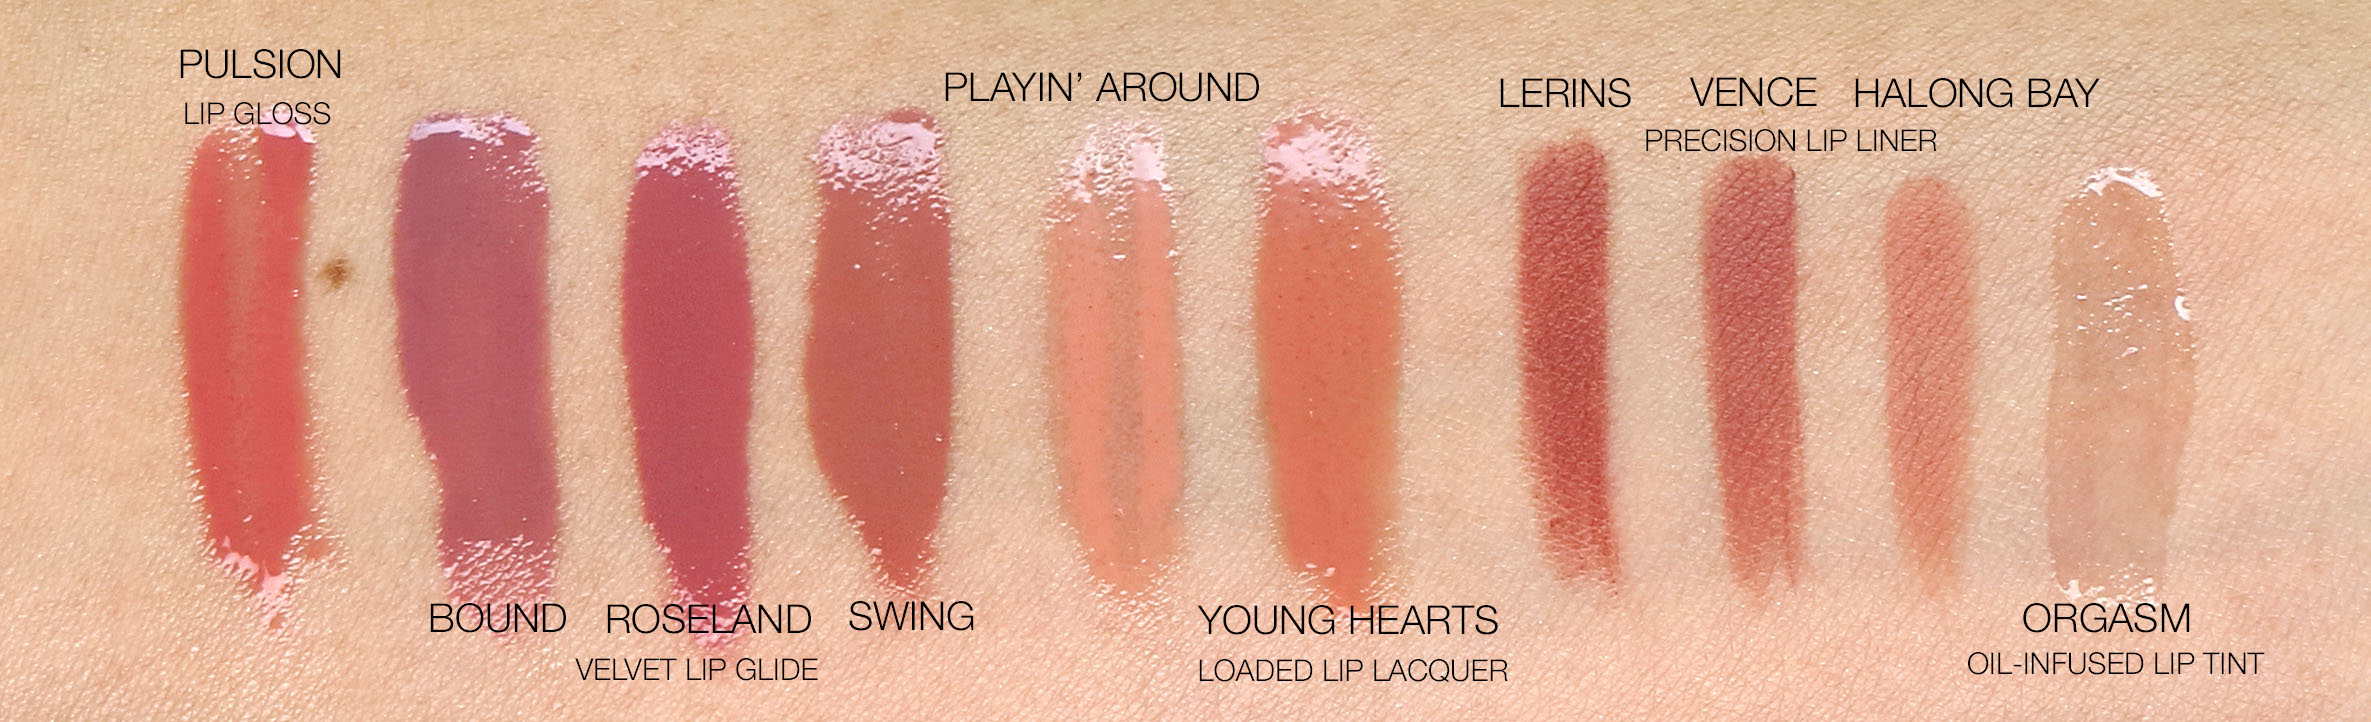 NARS Loaded Lip Lacquer